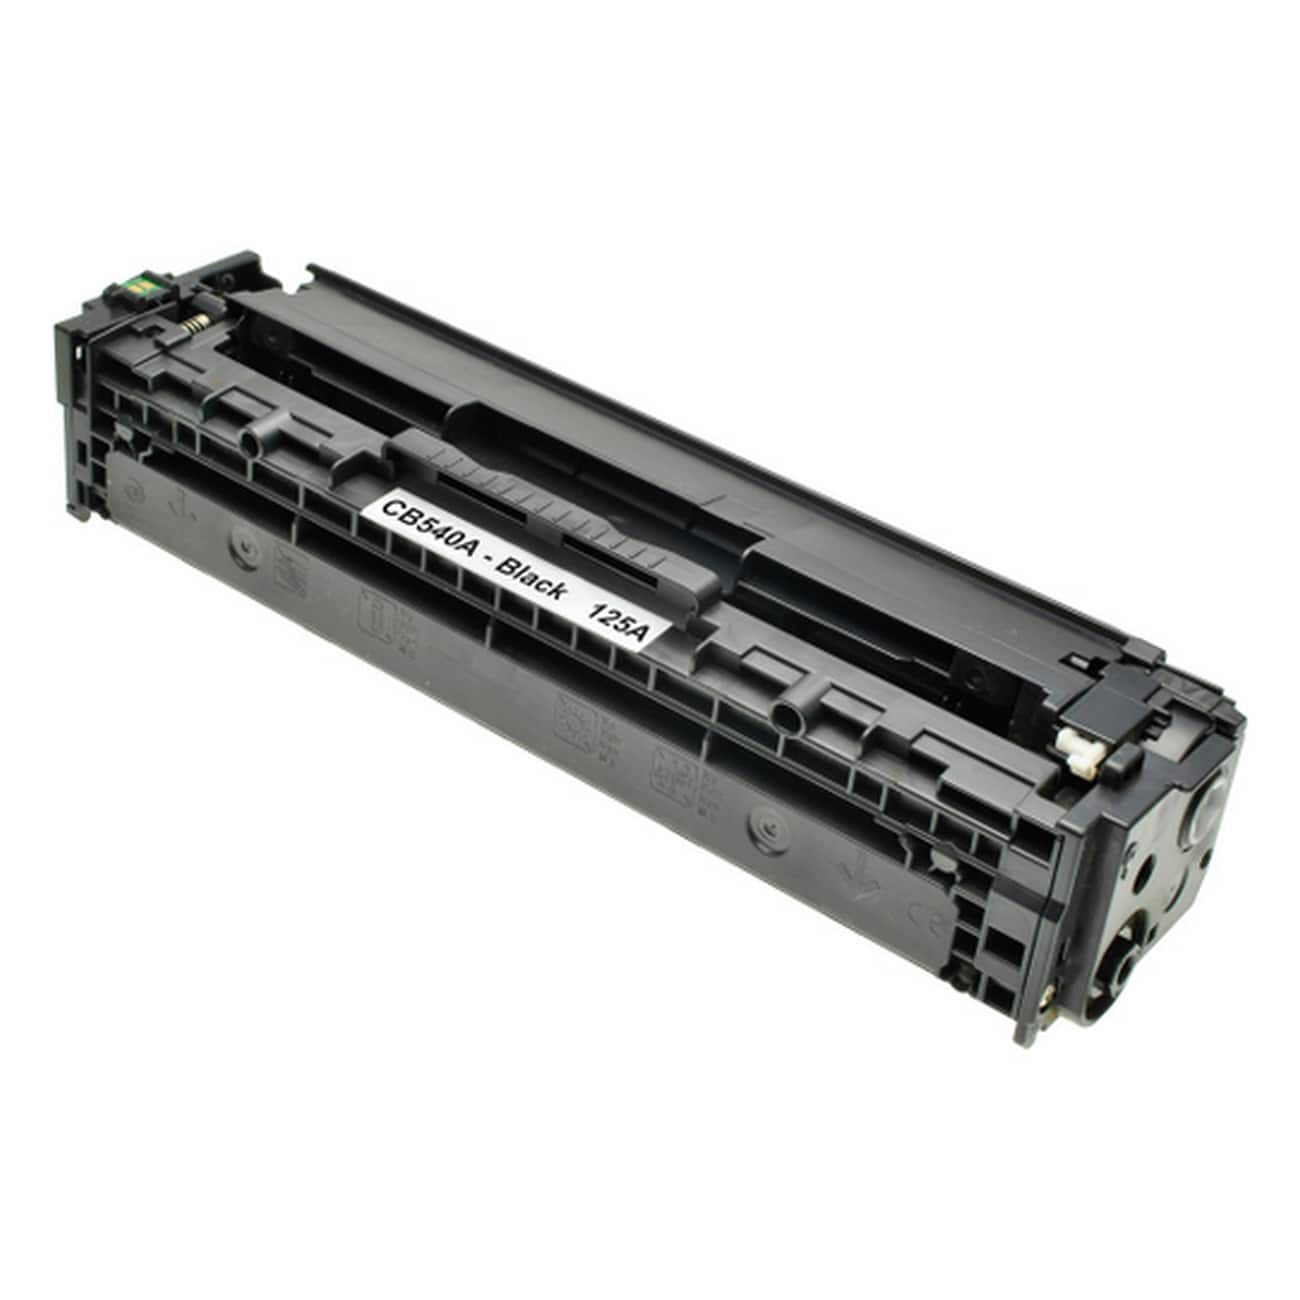 CB540A Toner Cartridge - HP Remanufactured (Black)